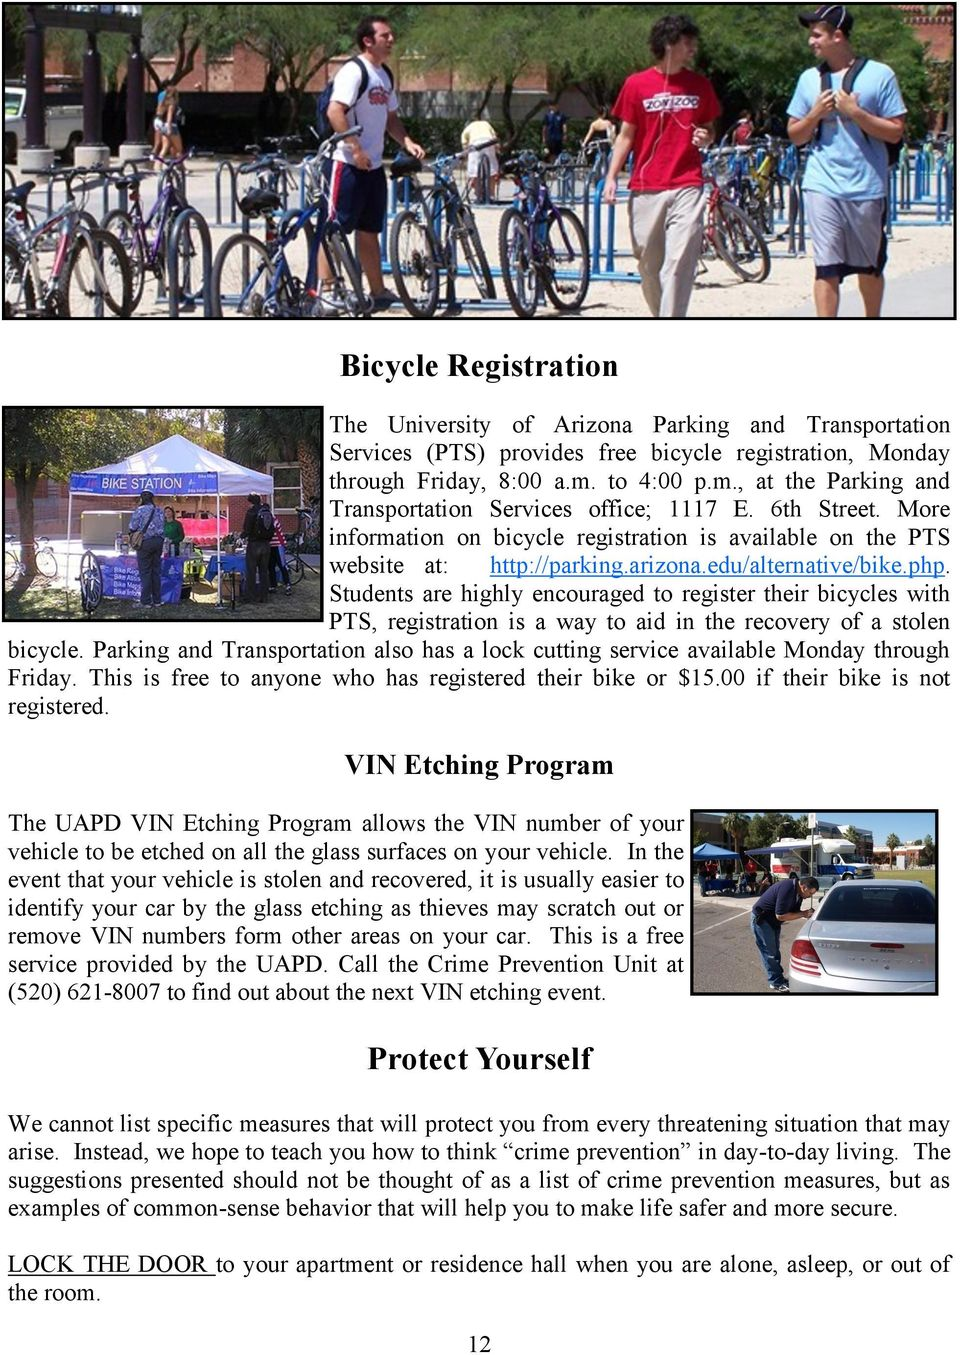 edu/alternative/bike.php. Students are highly encouraged to register their bicycles with PTS, registration is a way to aid in the recovery of a stolen bicycle.